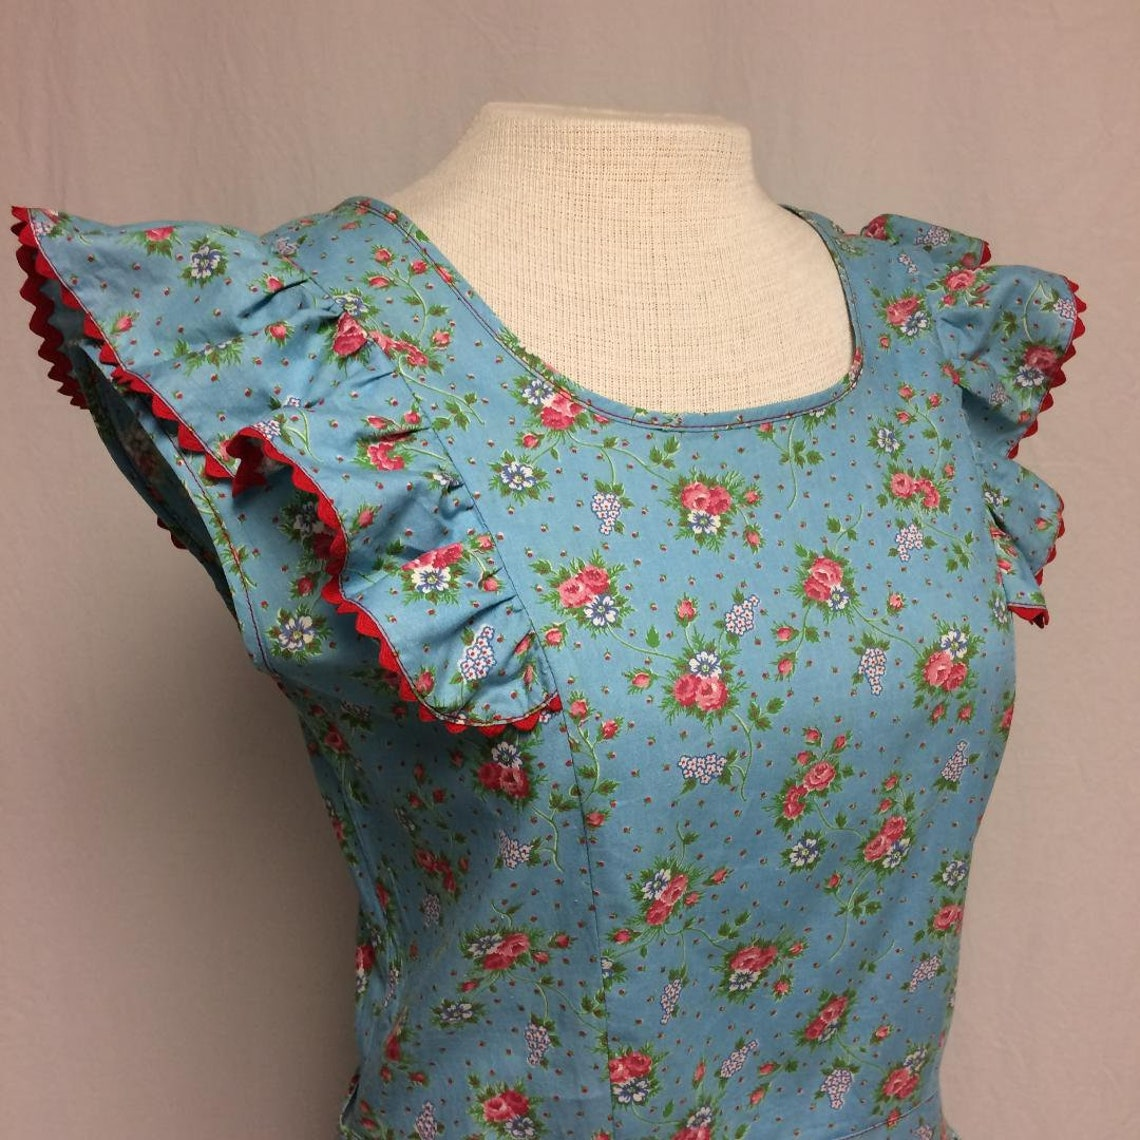 1940's Blue Cotton Ruffled Rose Print House Day Dress Med.